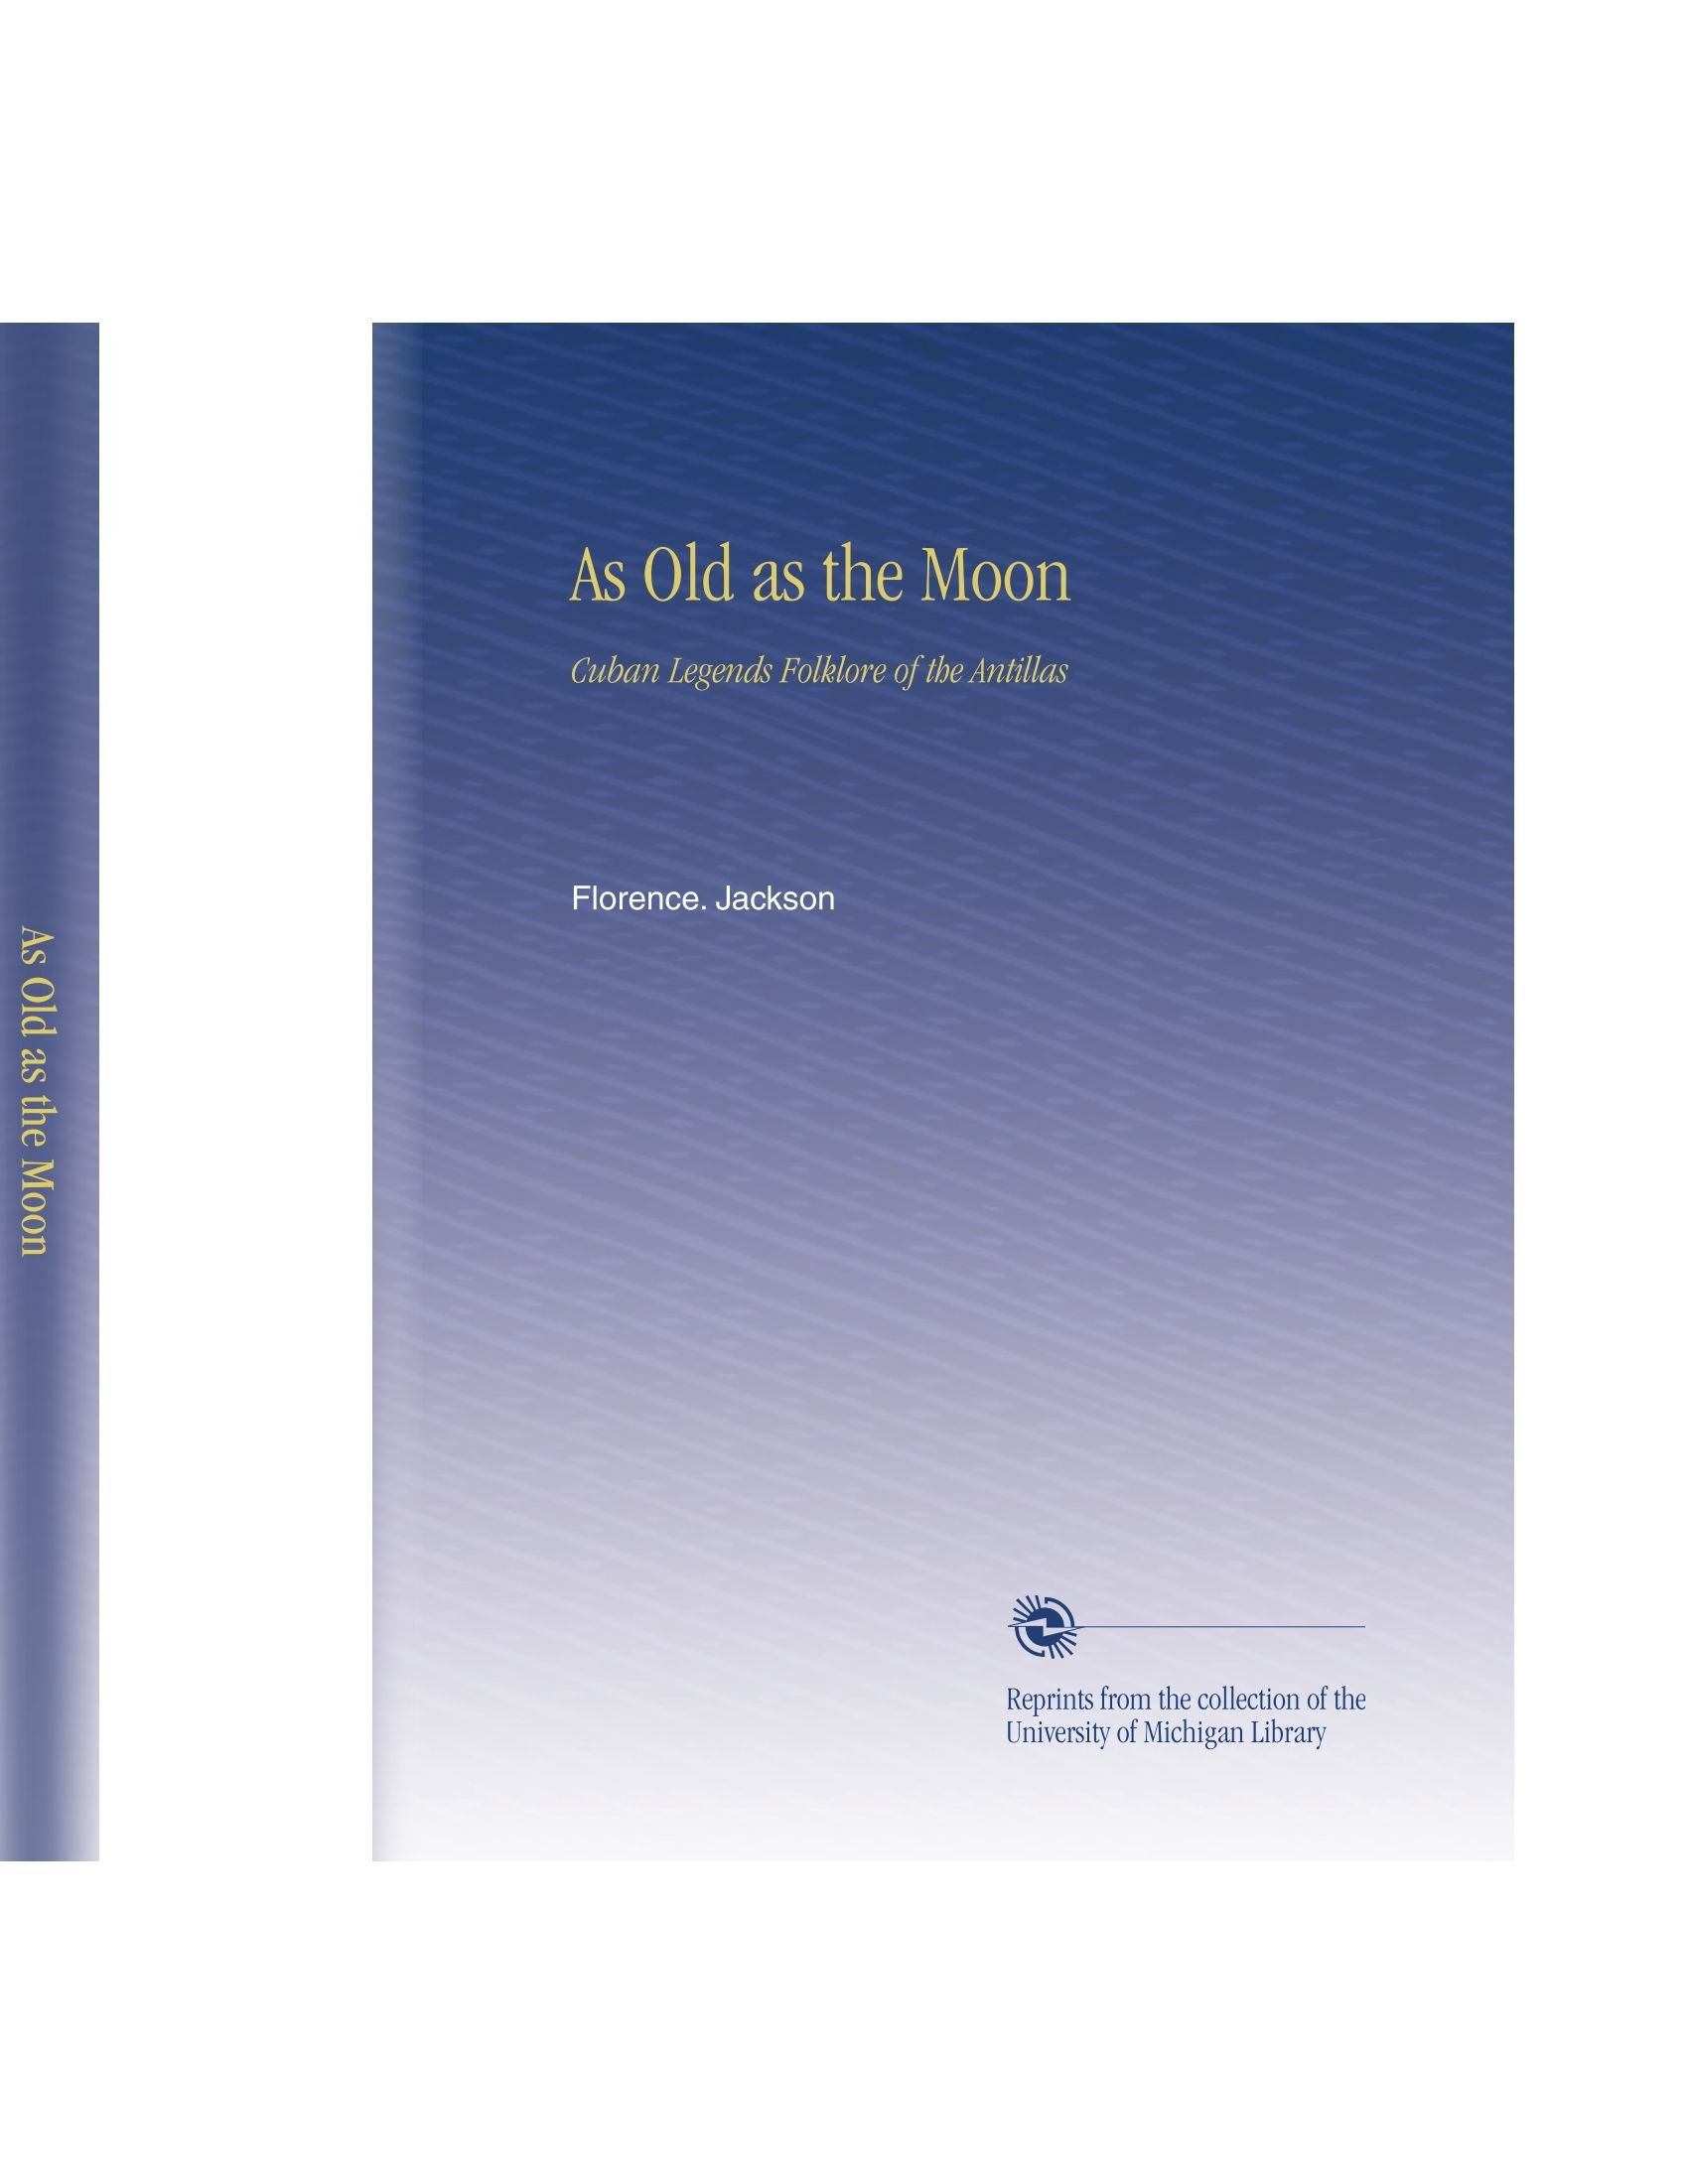 Download As Old as the Moon: Cuban Legends Folklore of the Antillas PDF